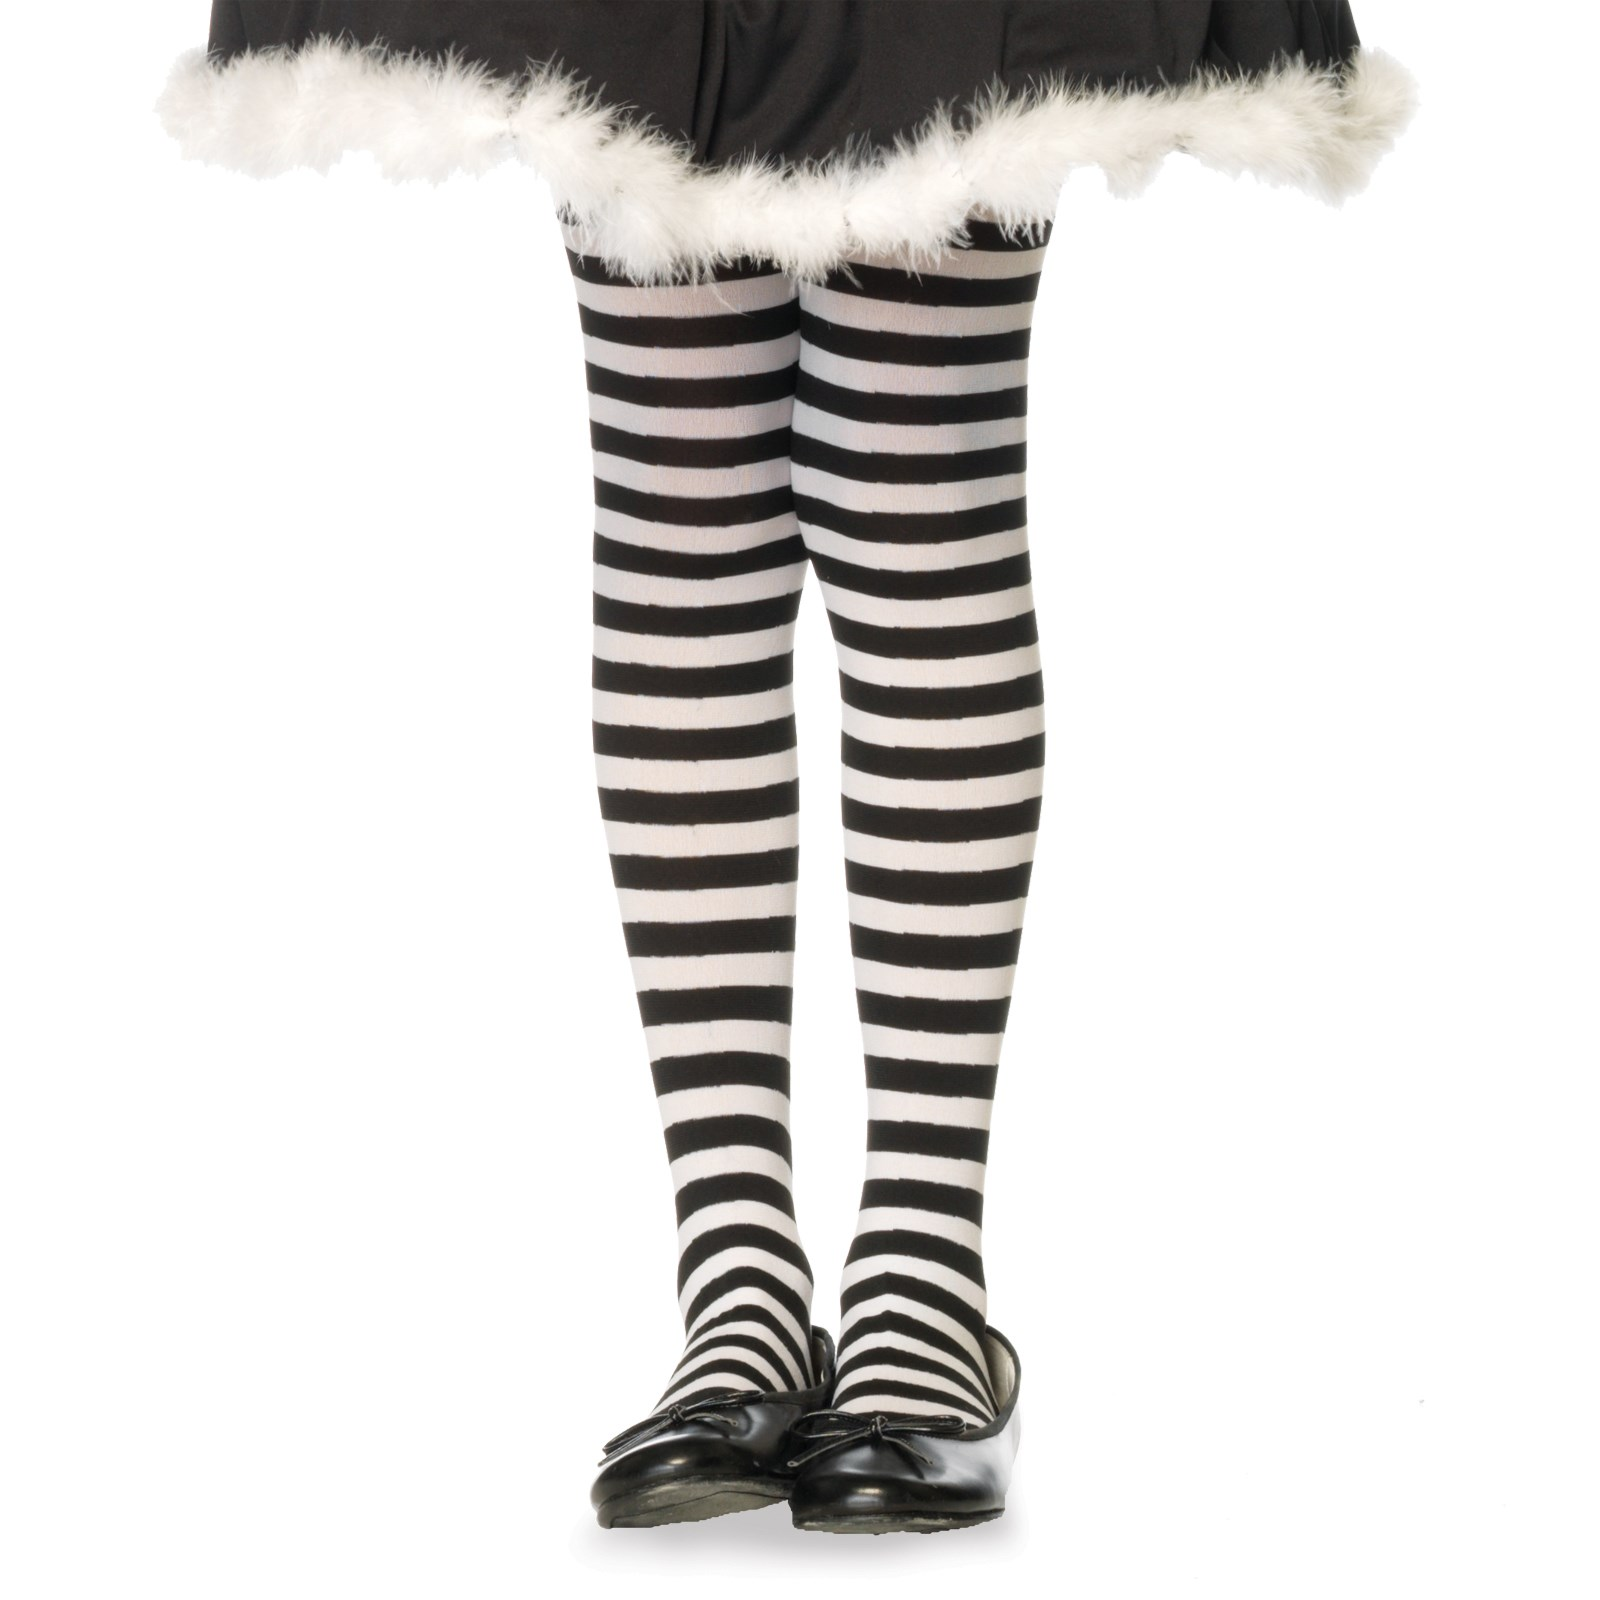 Striped Tights (Black/White) Child Large (7/10)